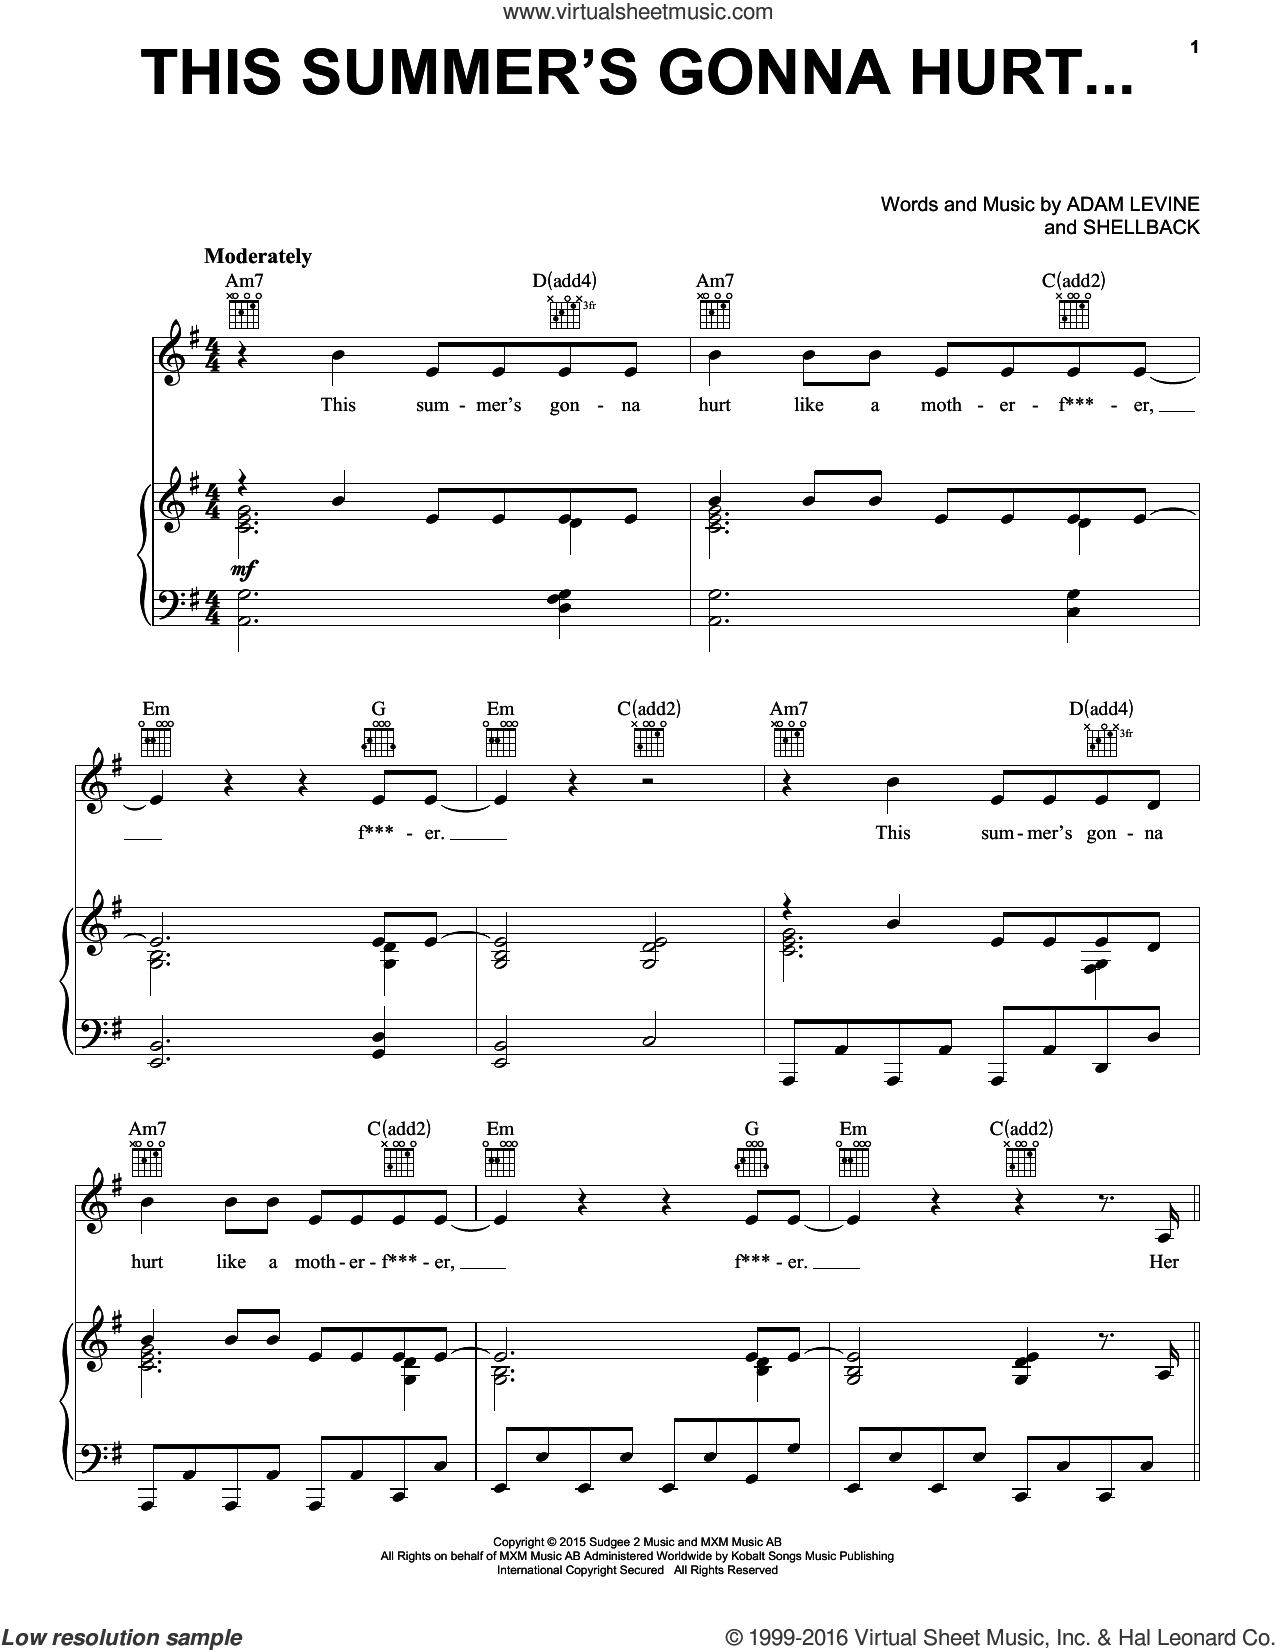 This Summer's Gonna Hurt Like A Motherf***er sheet music for voice, piano or guitar by Shellback